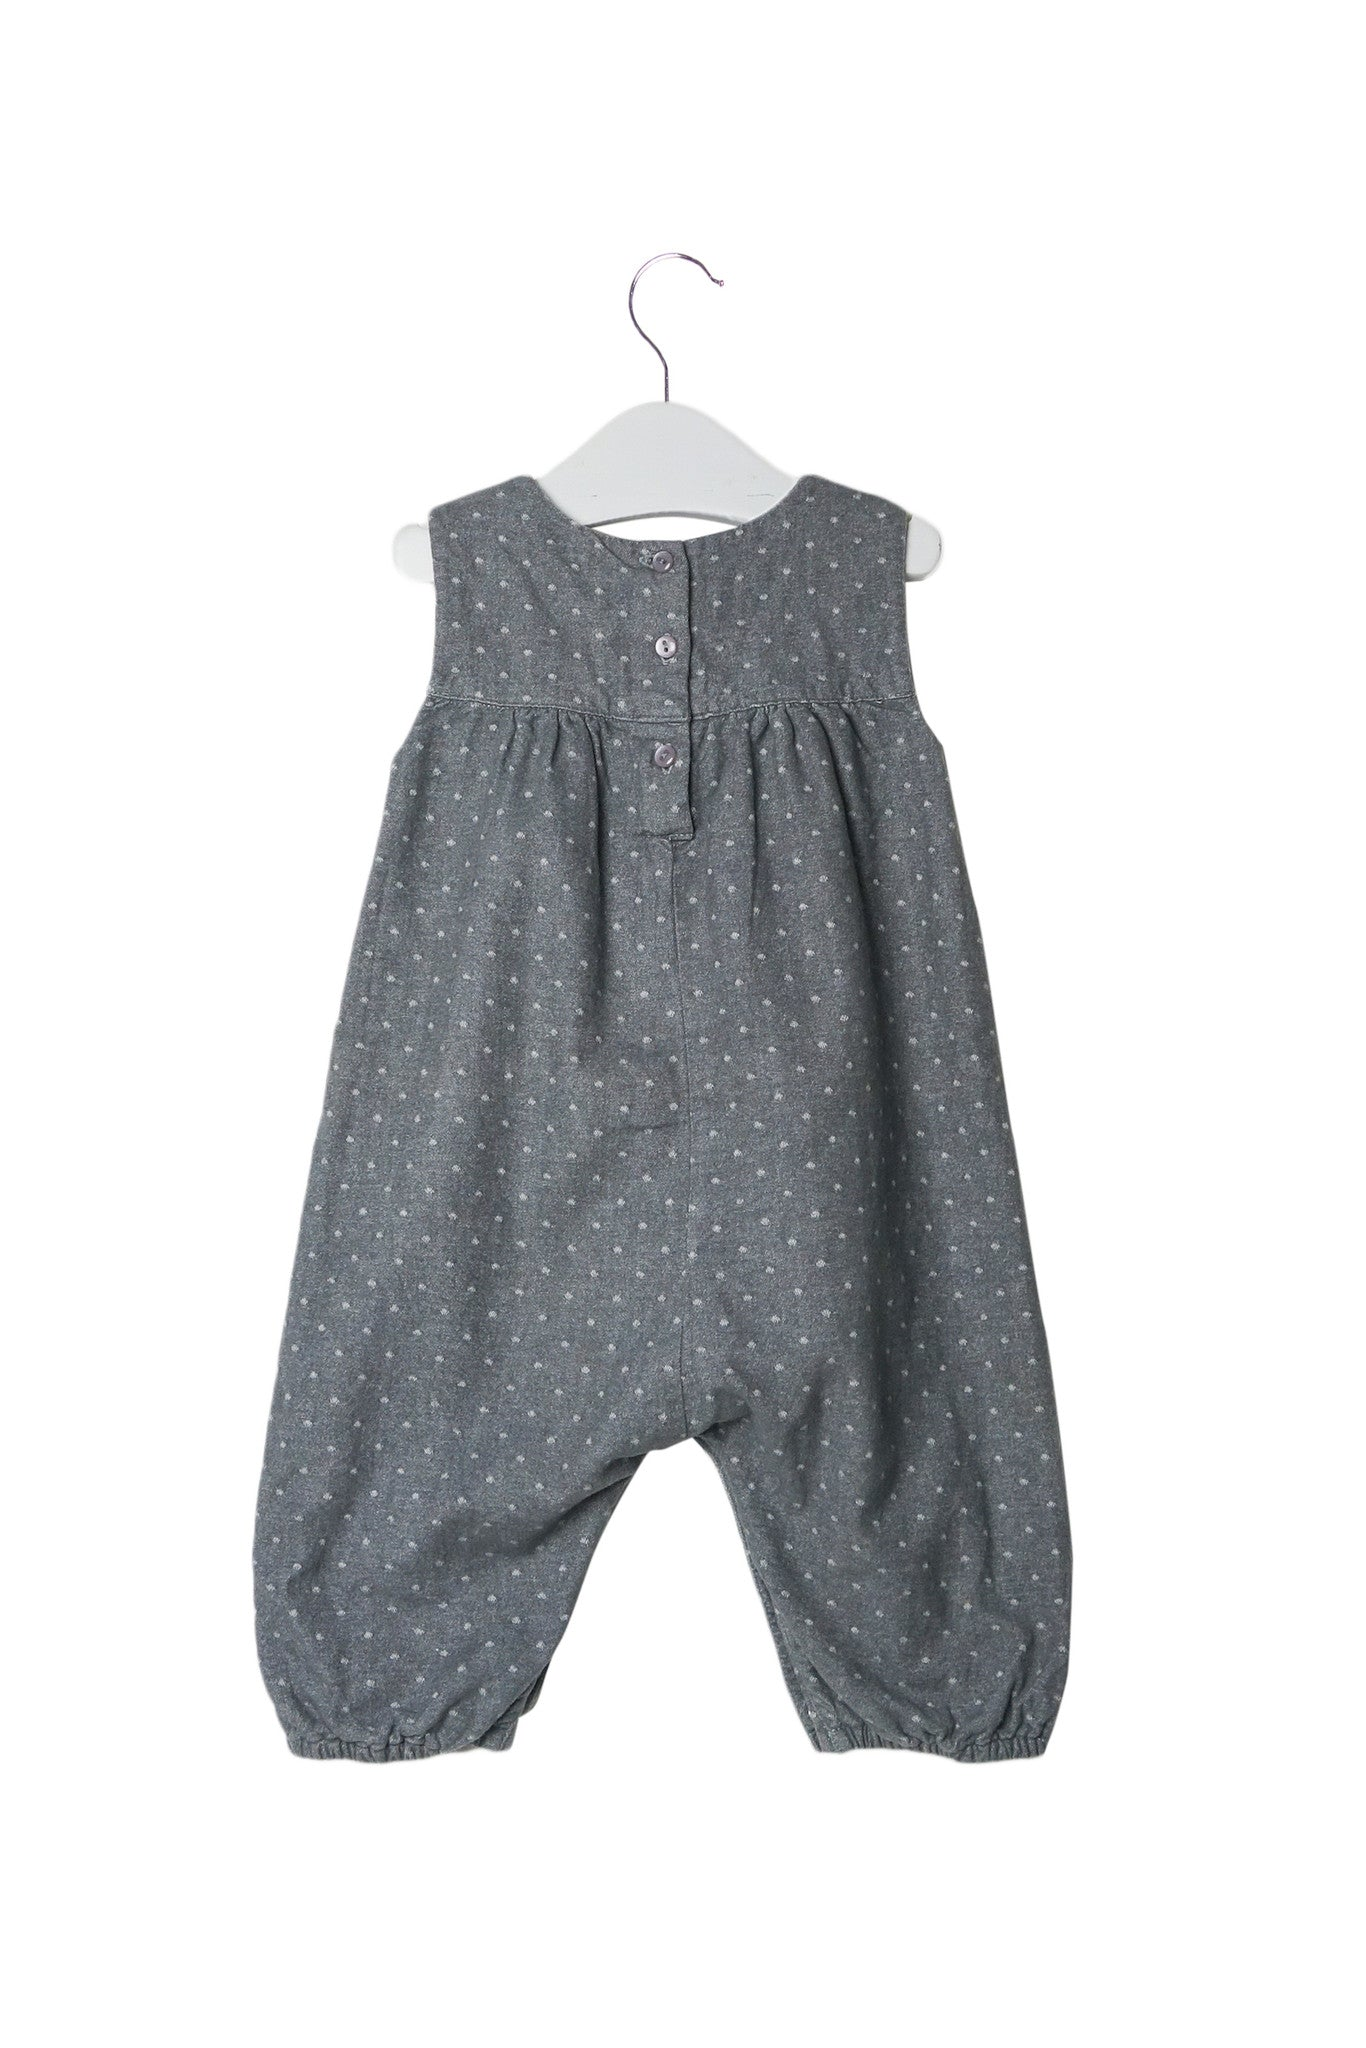 10002739 The Little White Company Baby~Jumpsuit 3-6M at Retykle